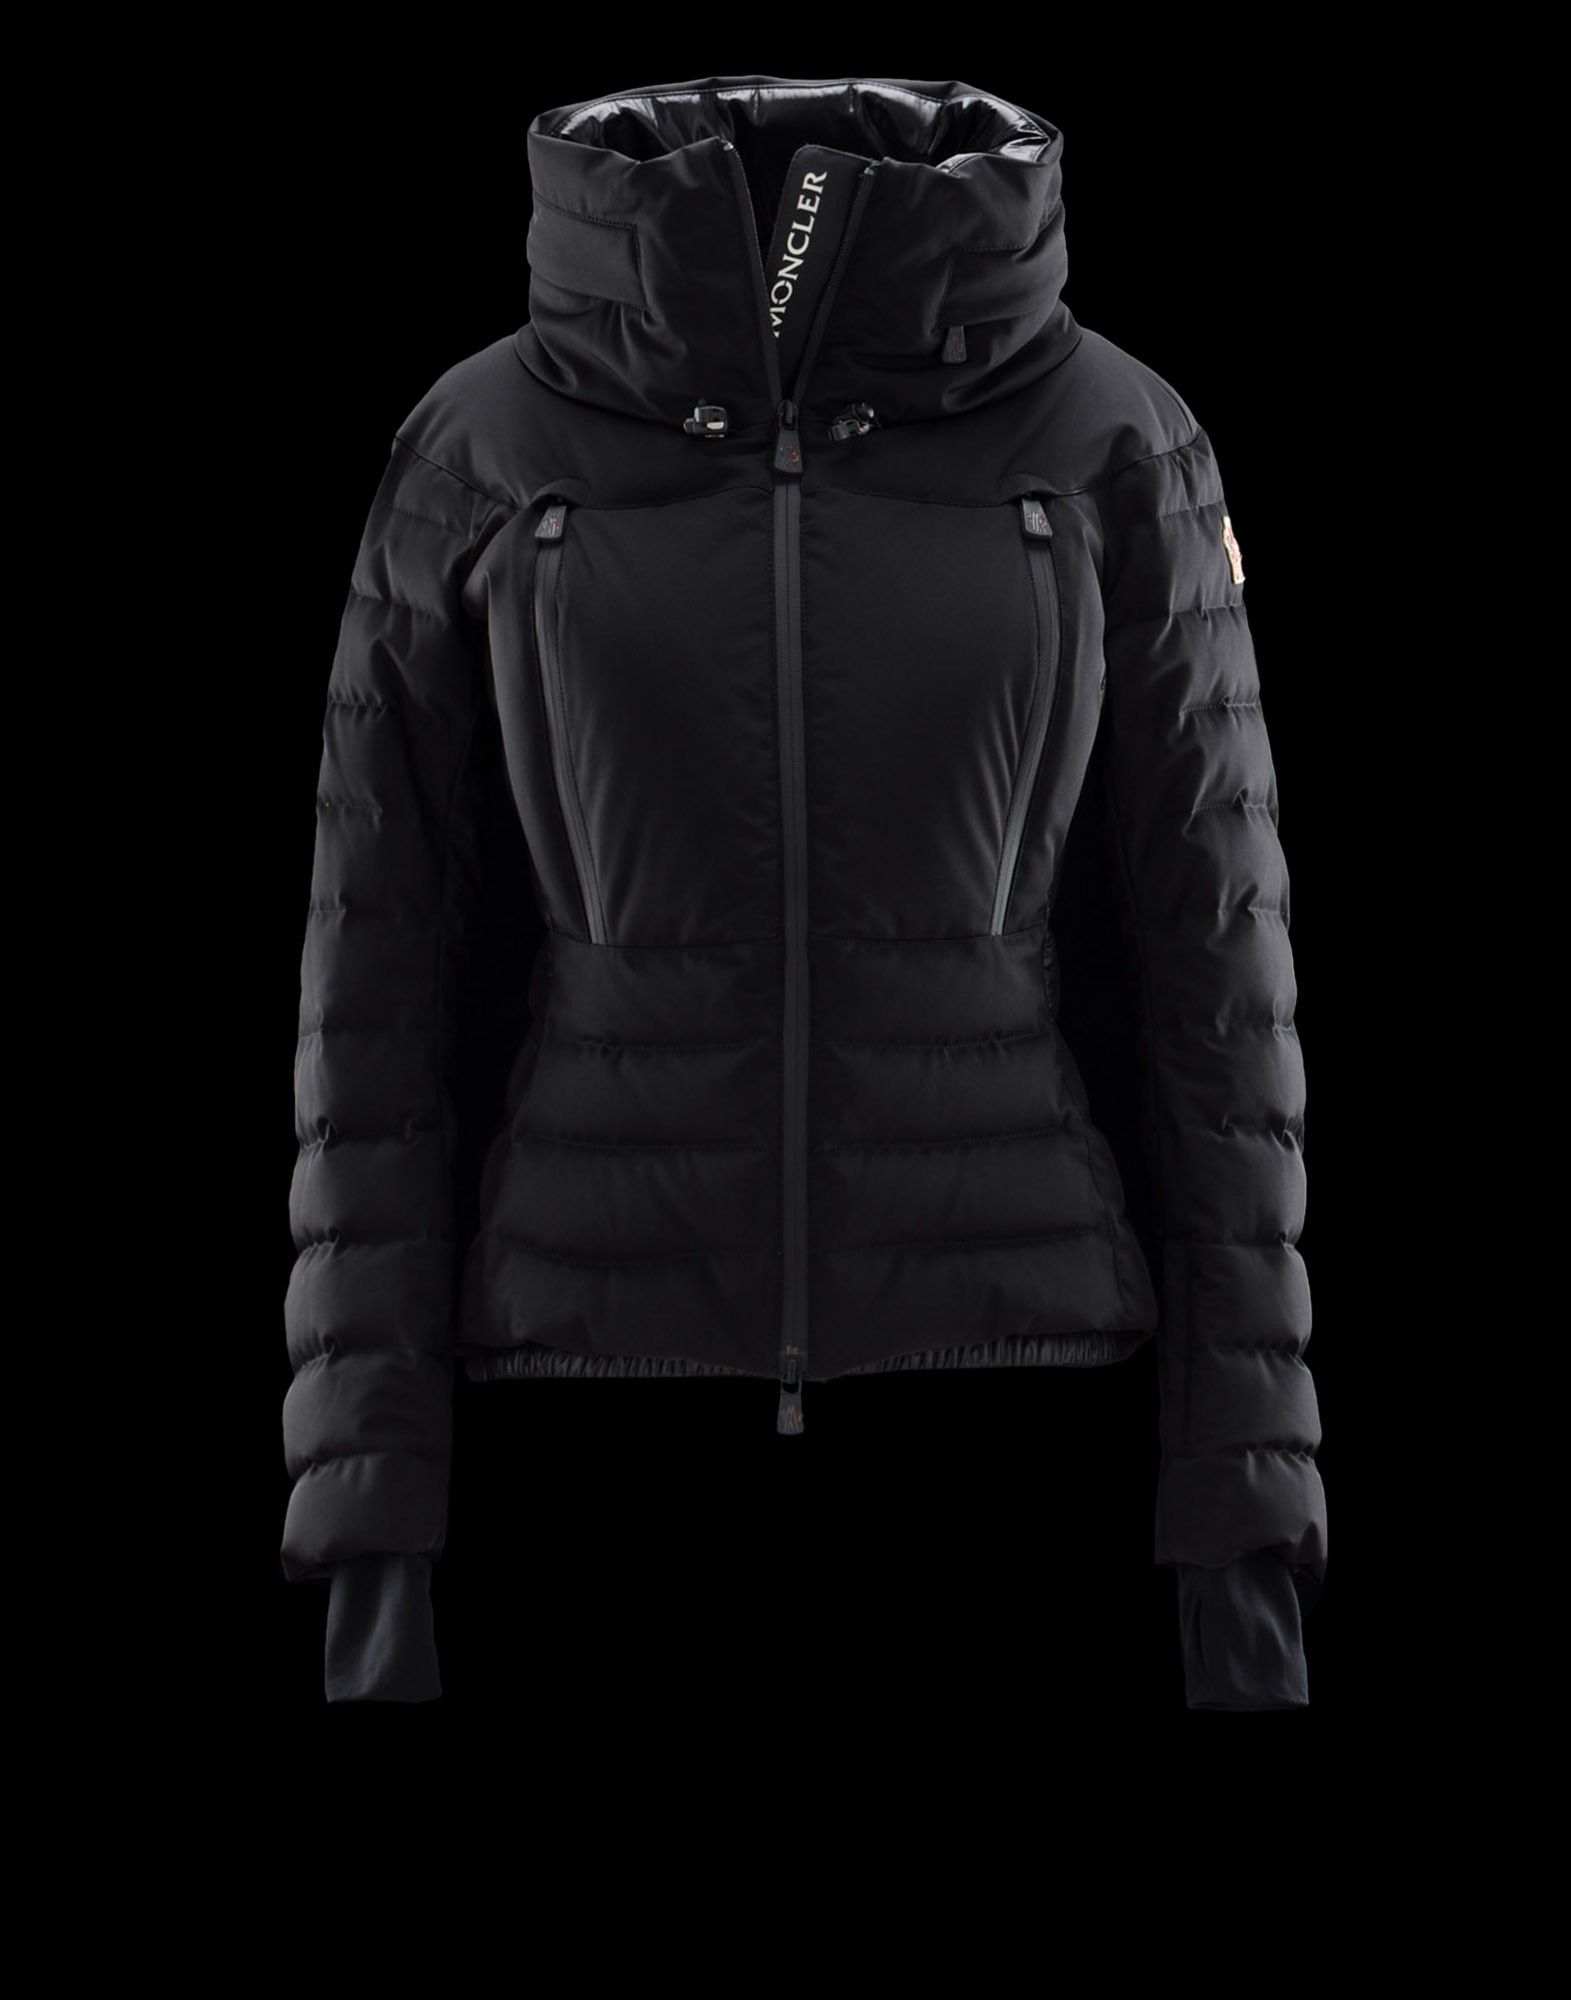 6fd9bad7ab Clothing and down jackets for men, women and kids | MONCLER ...